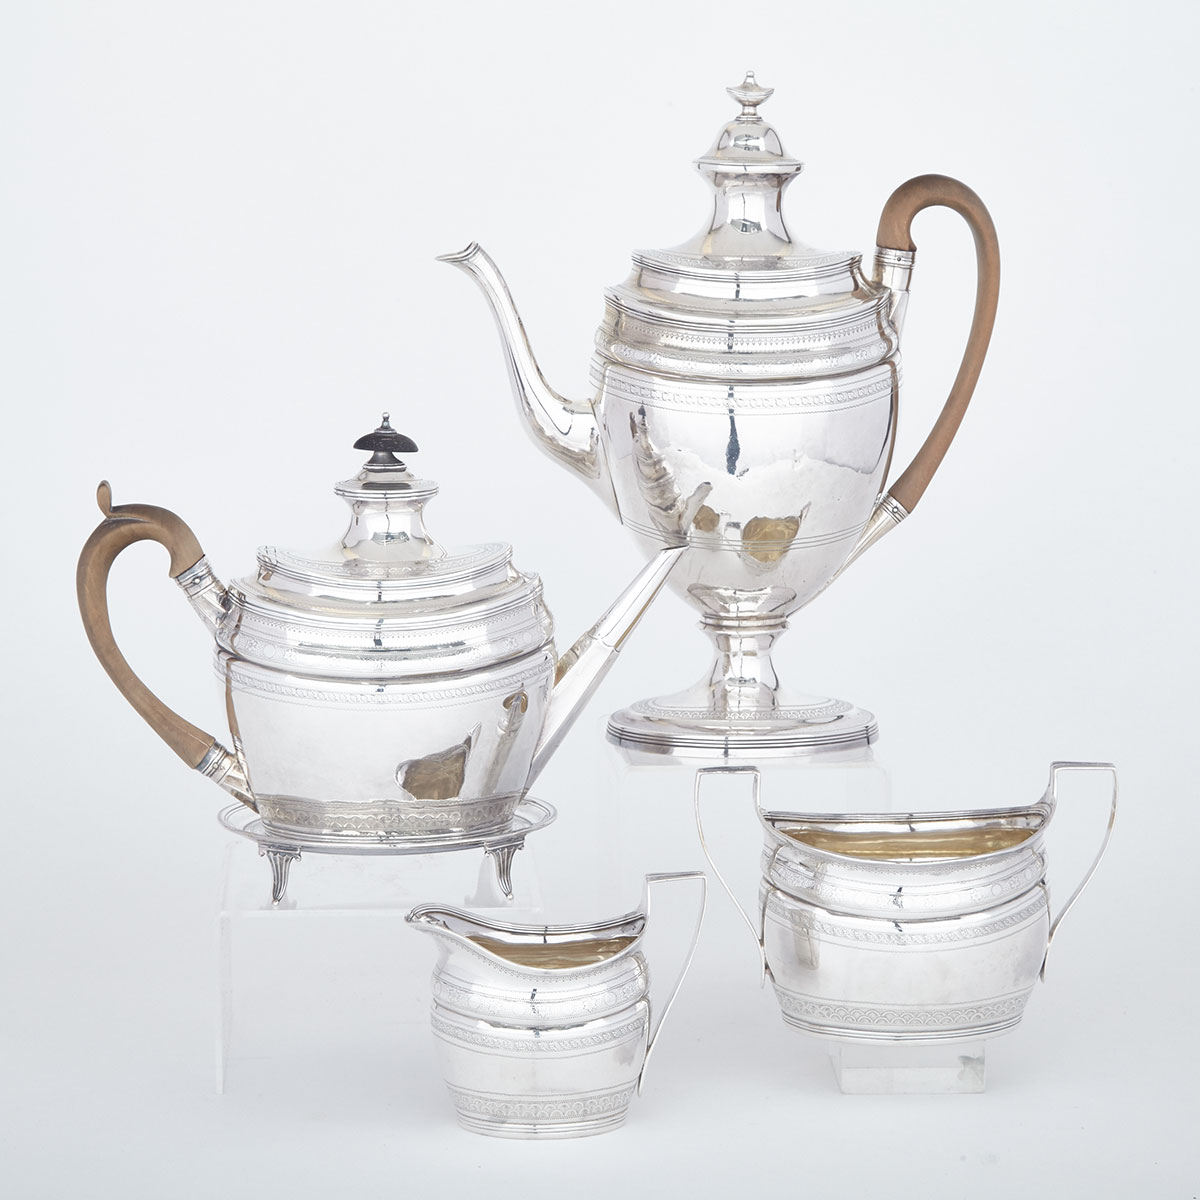 George III Silver Tea and Coffee Service, Robert & David Hennell, London, 1798